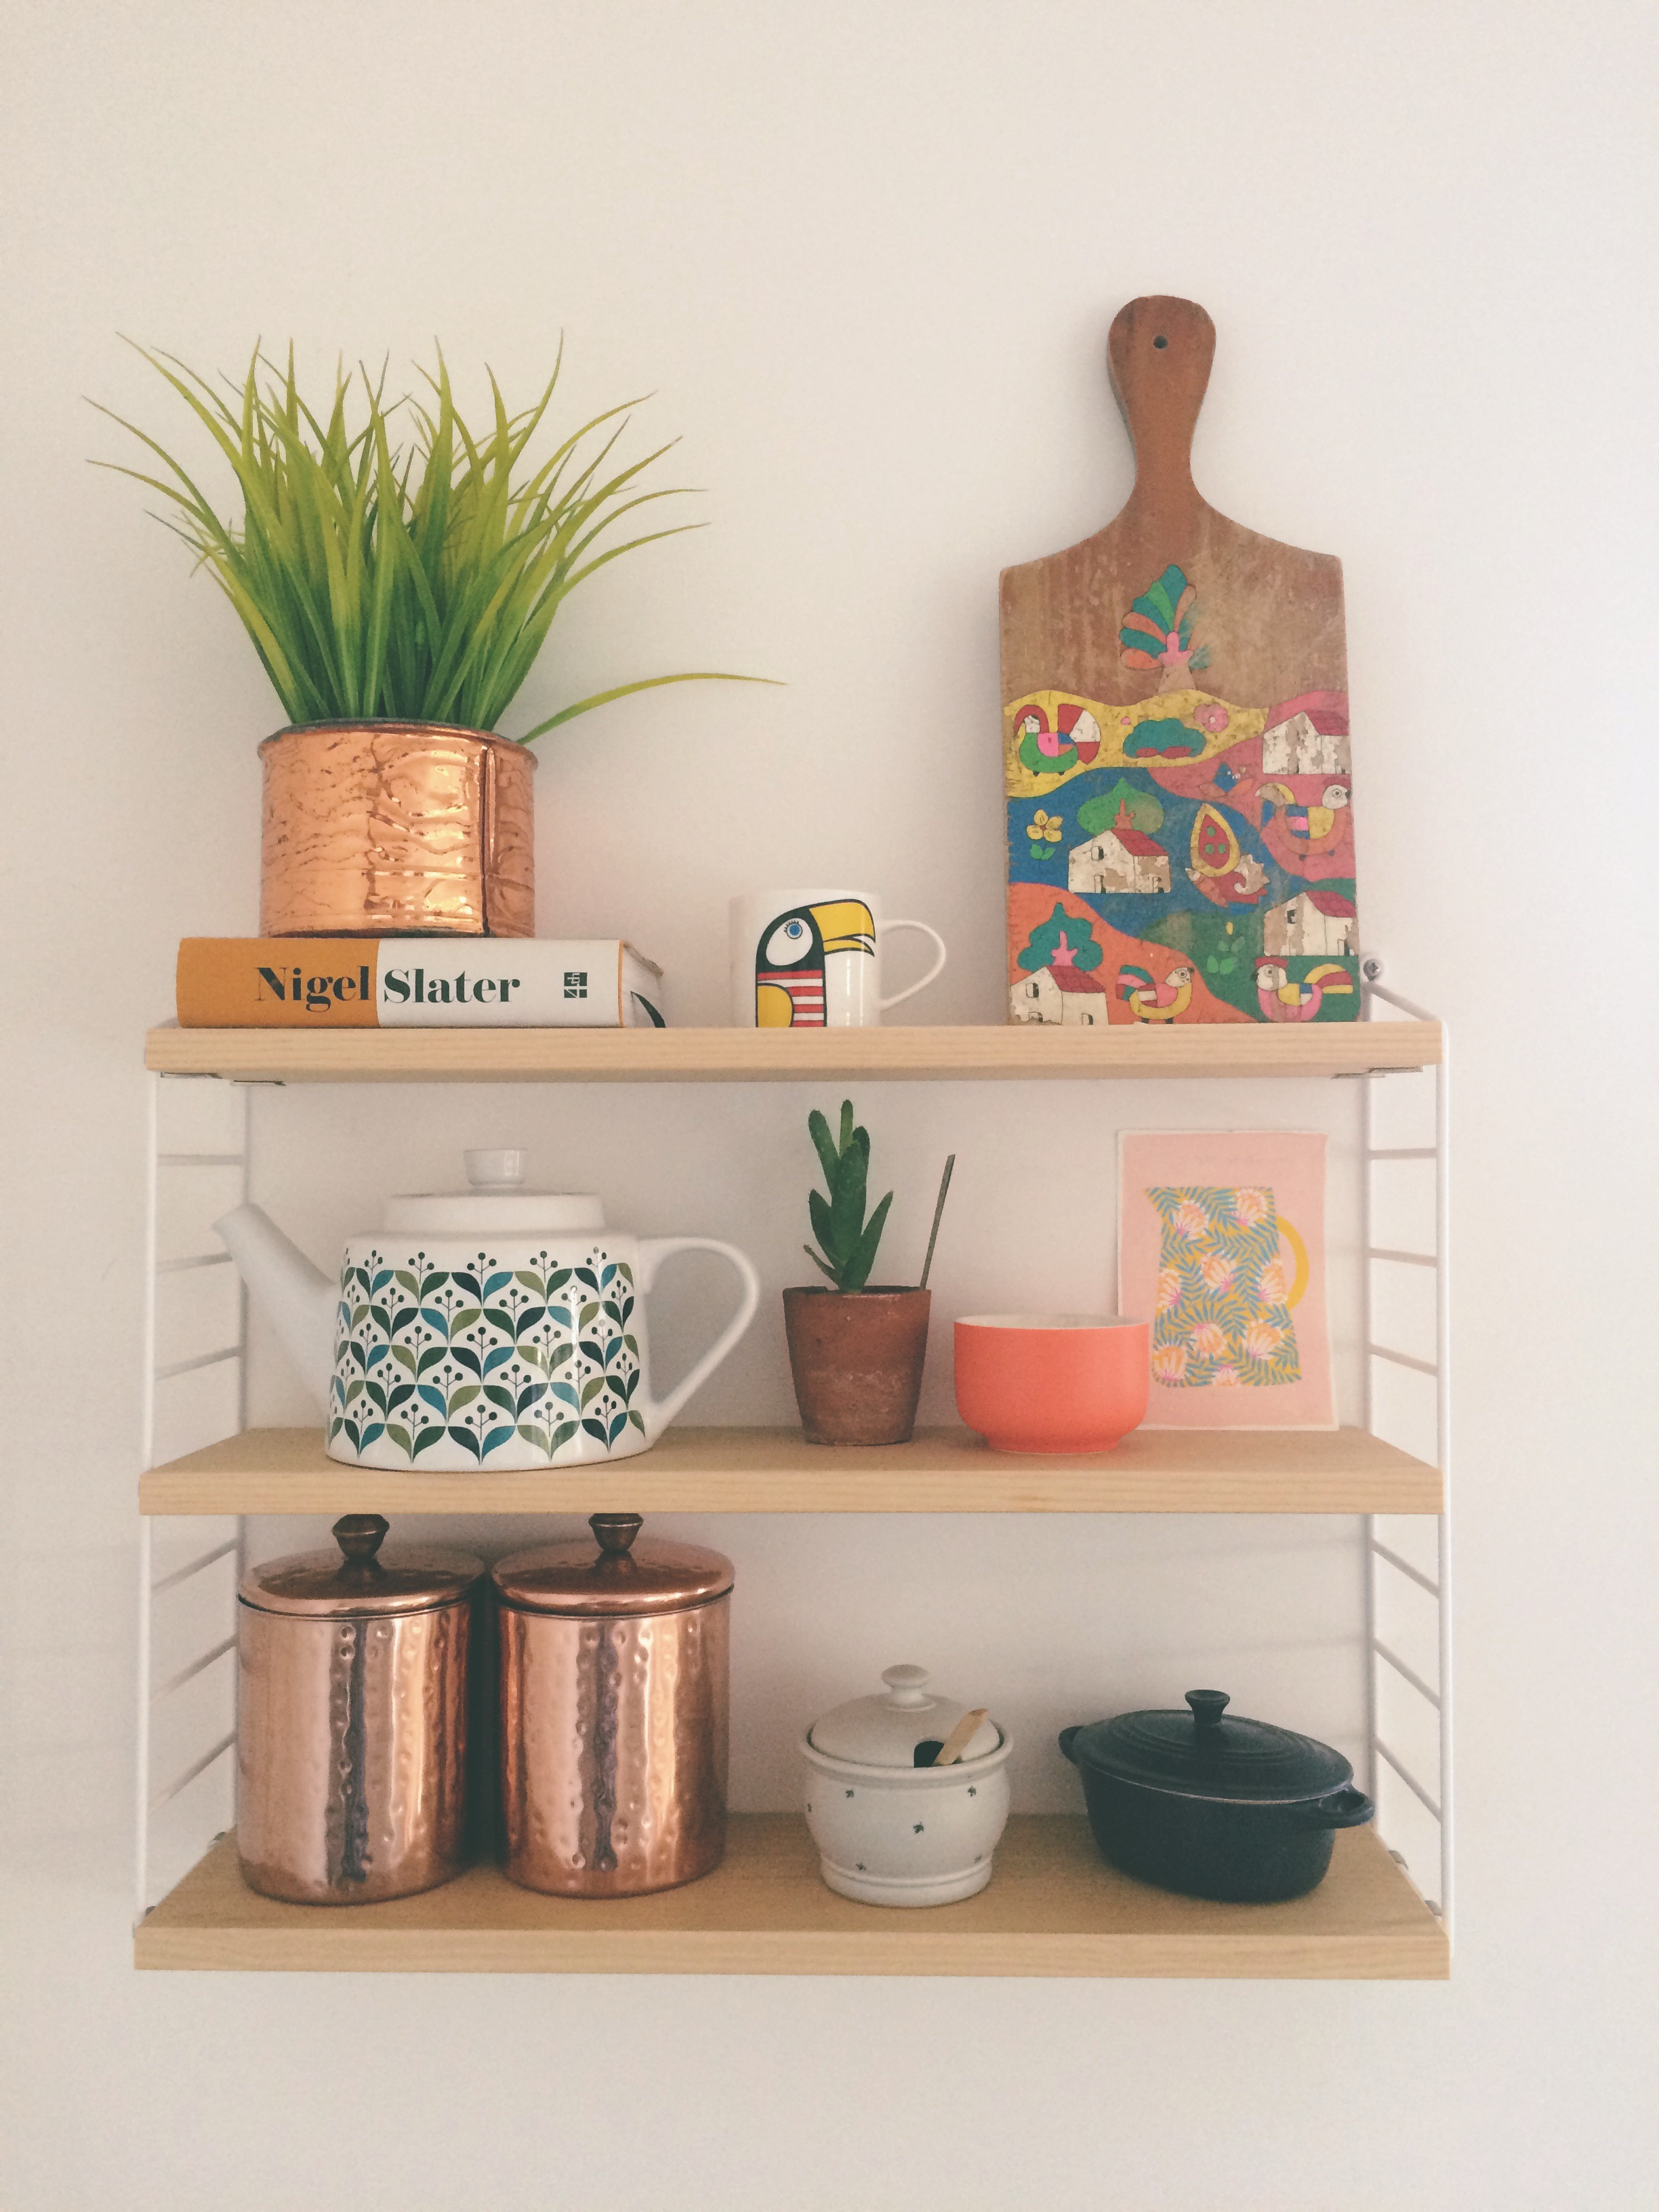 The iconic Scandinavian String Pocket Shelf. This takes pride of place in our kitchen and is as practical as it is beautiful.